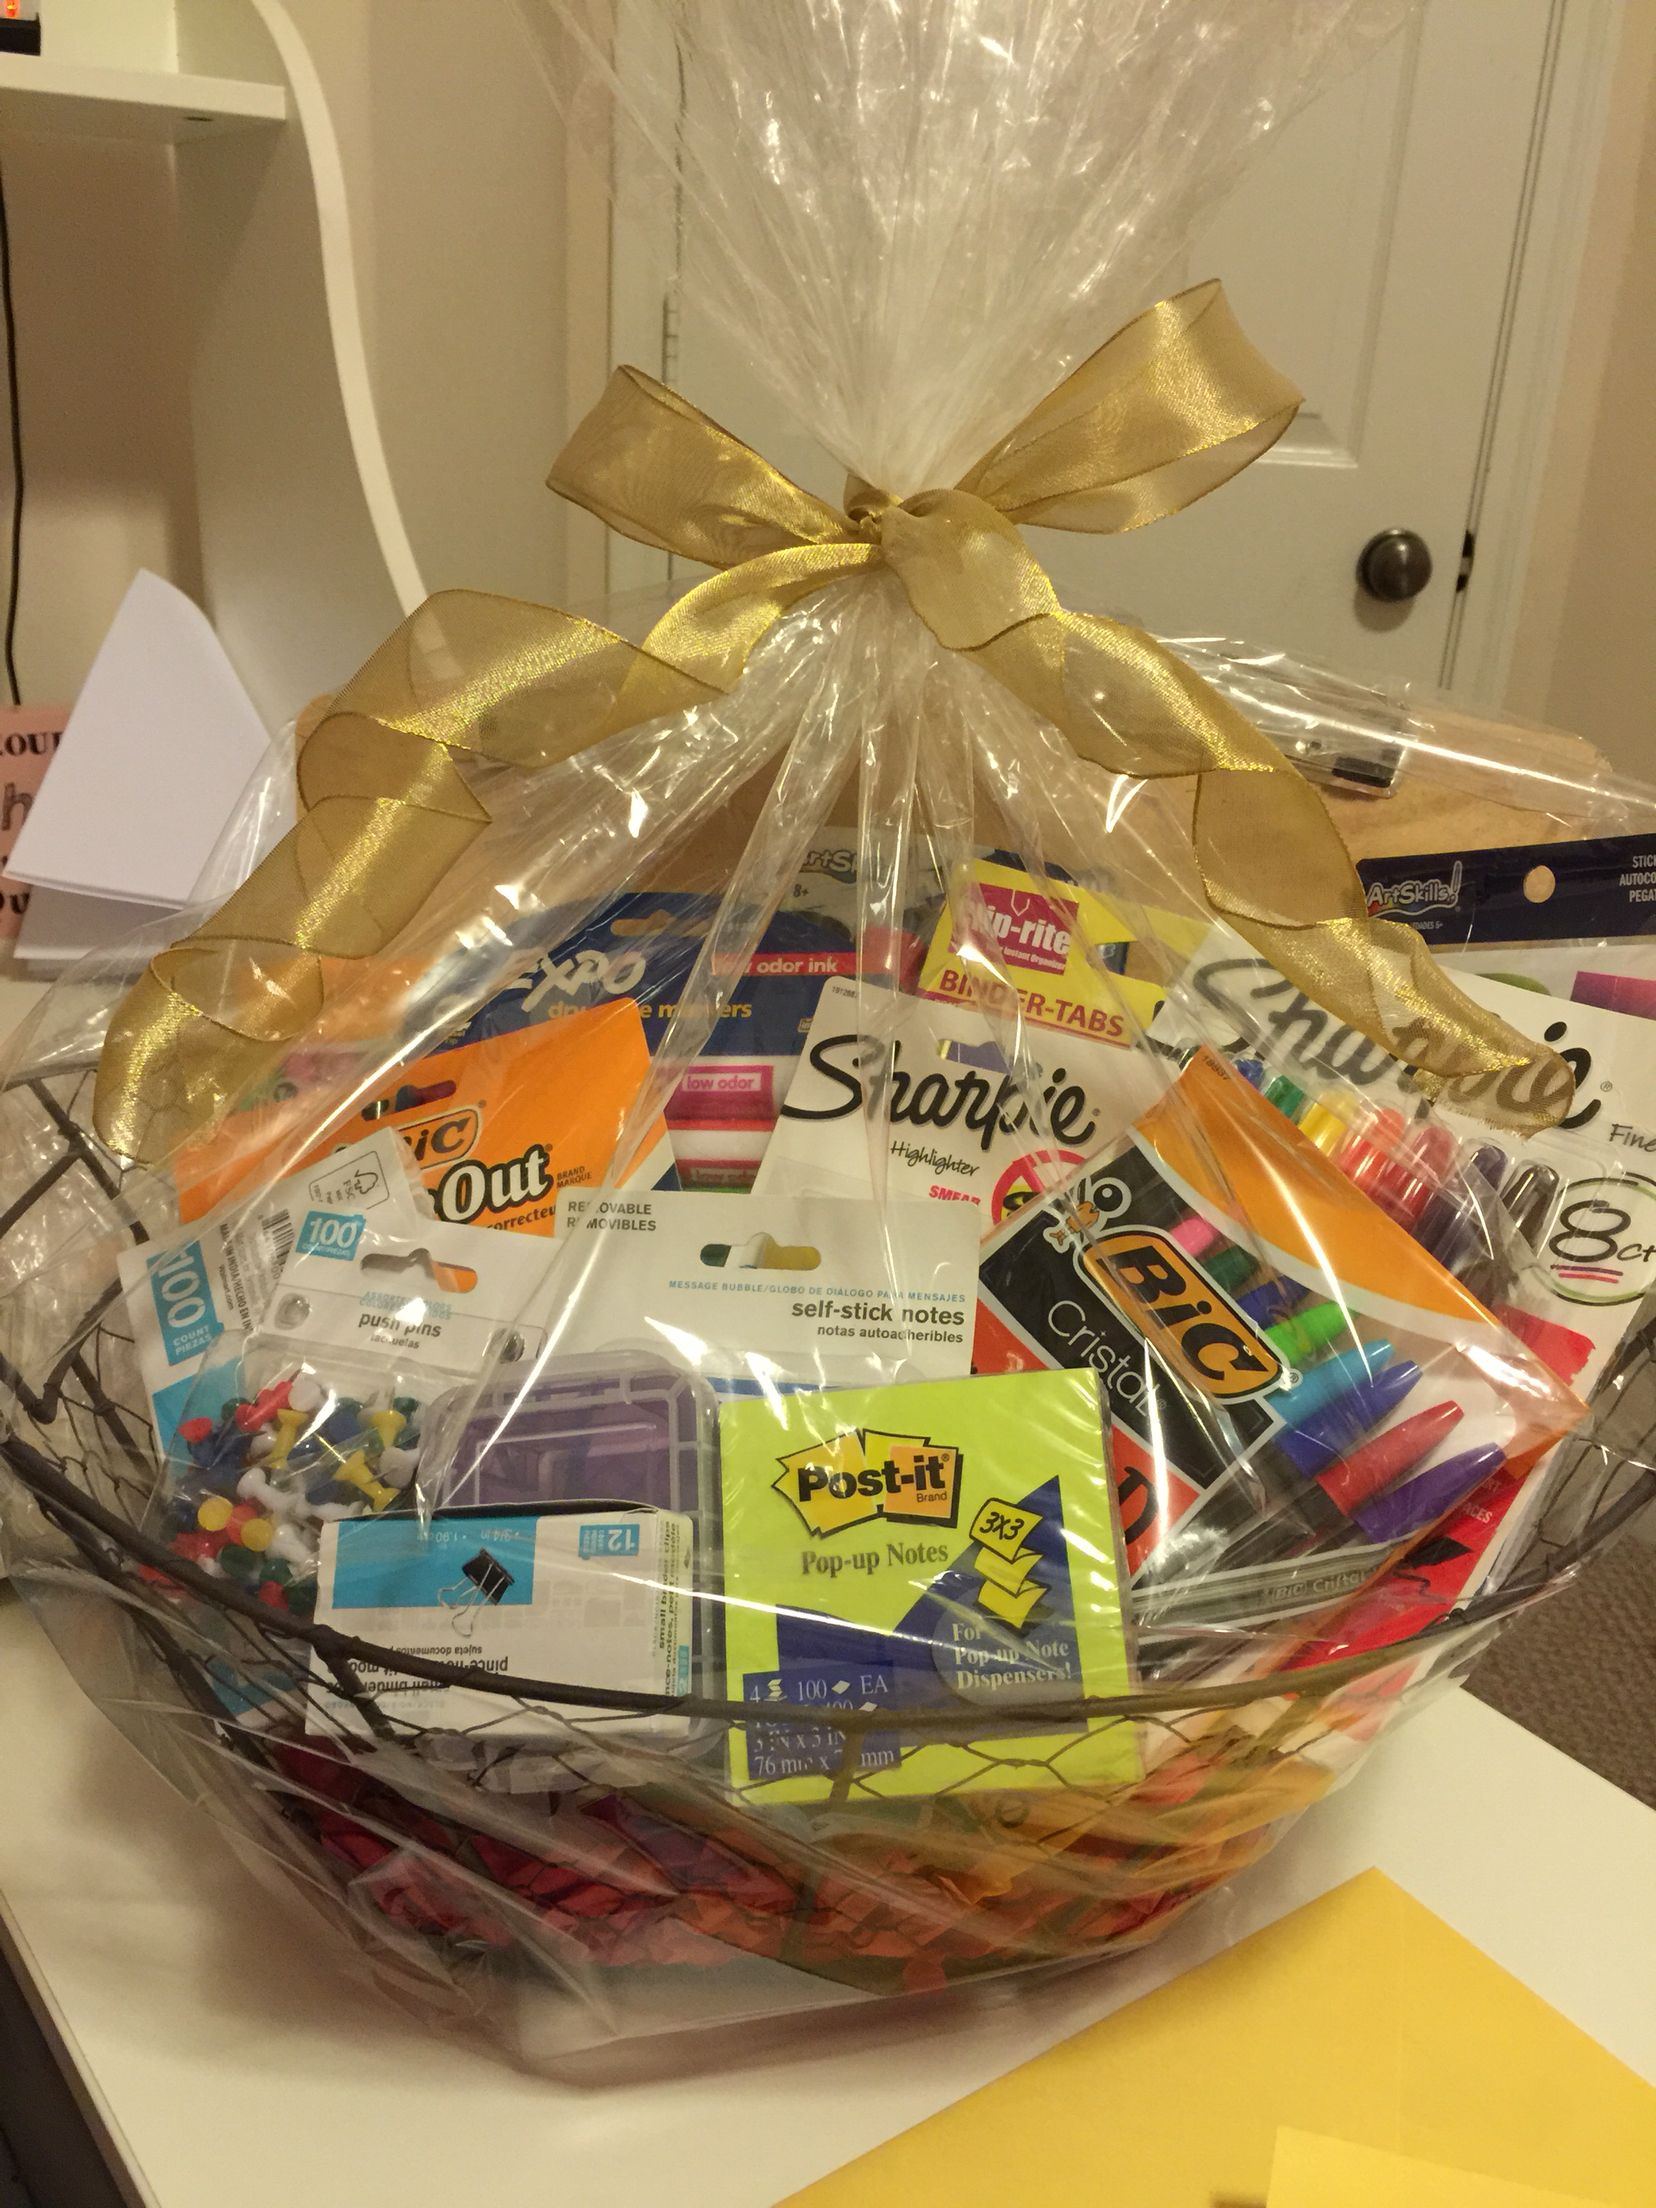 Office Supply Gift Basket  Great Idea For New Employee Welcome ( Can Make  The Basket Smaller And Fill With The Essentials Plus Add A Map Of The  Neighborhood ...